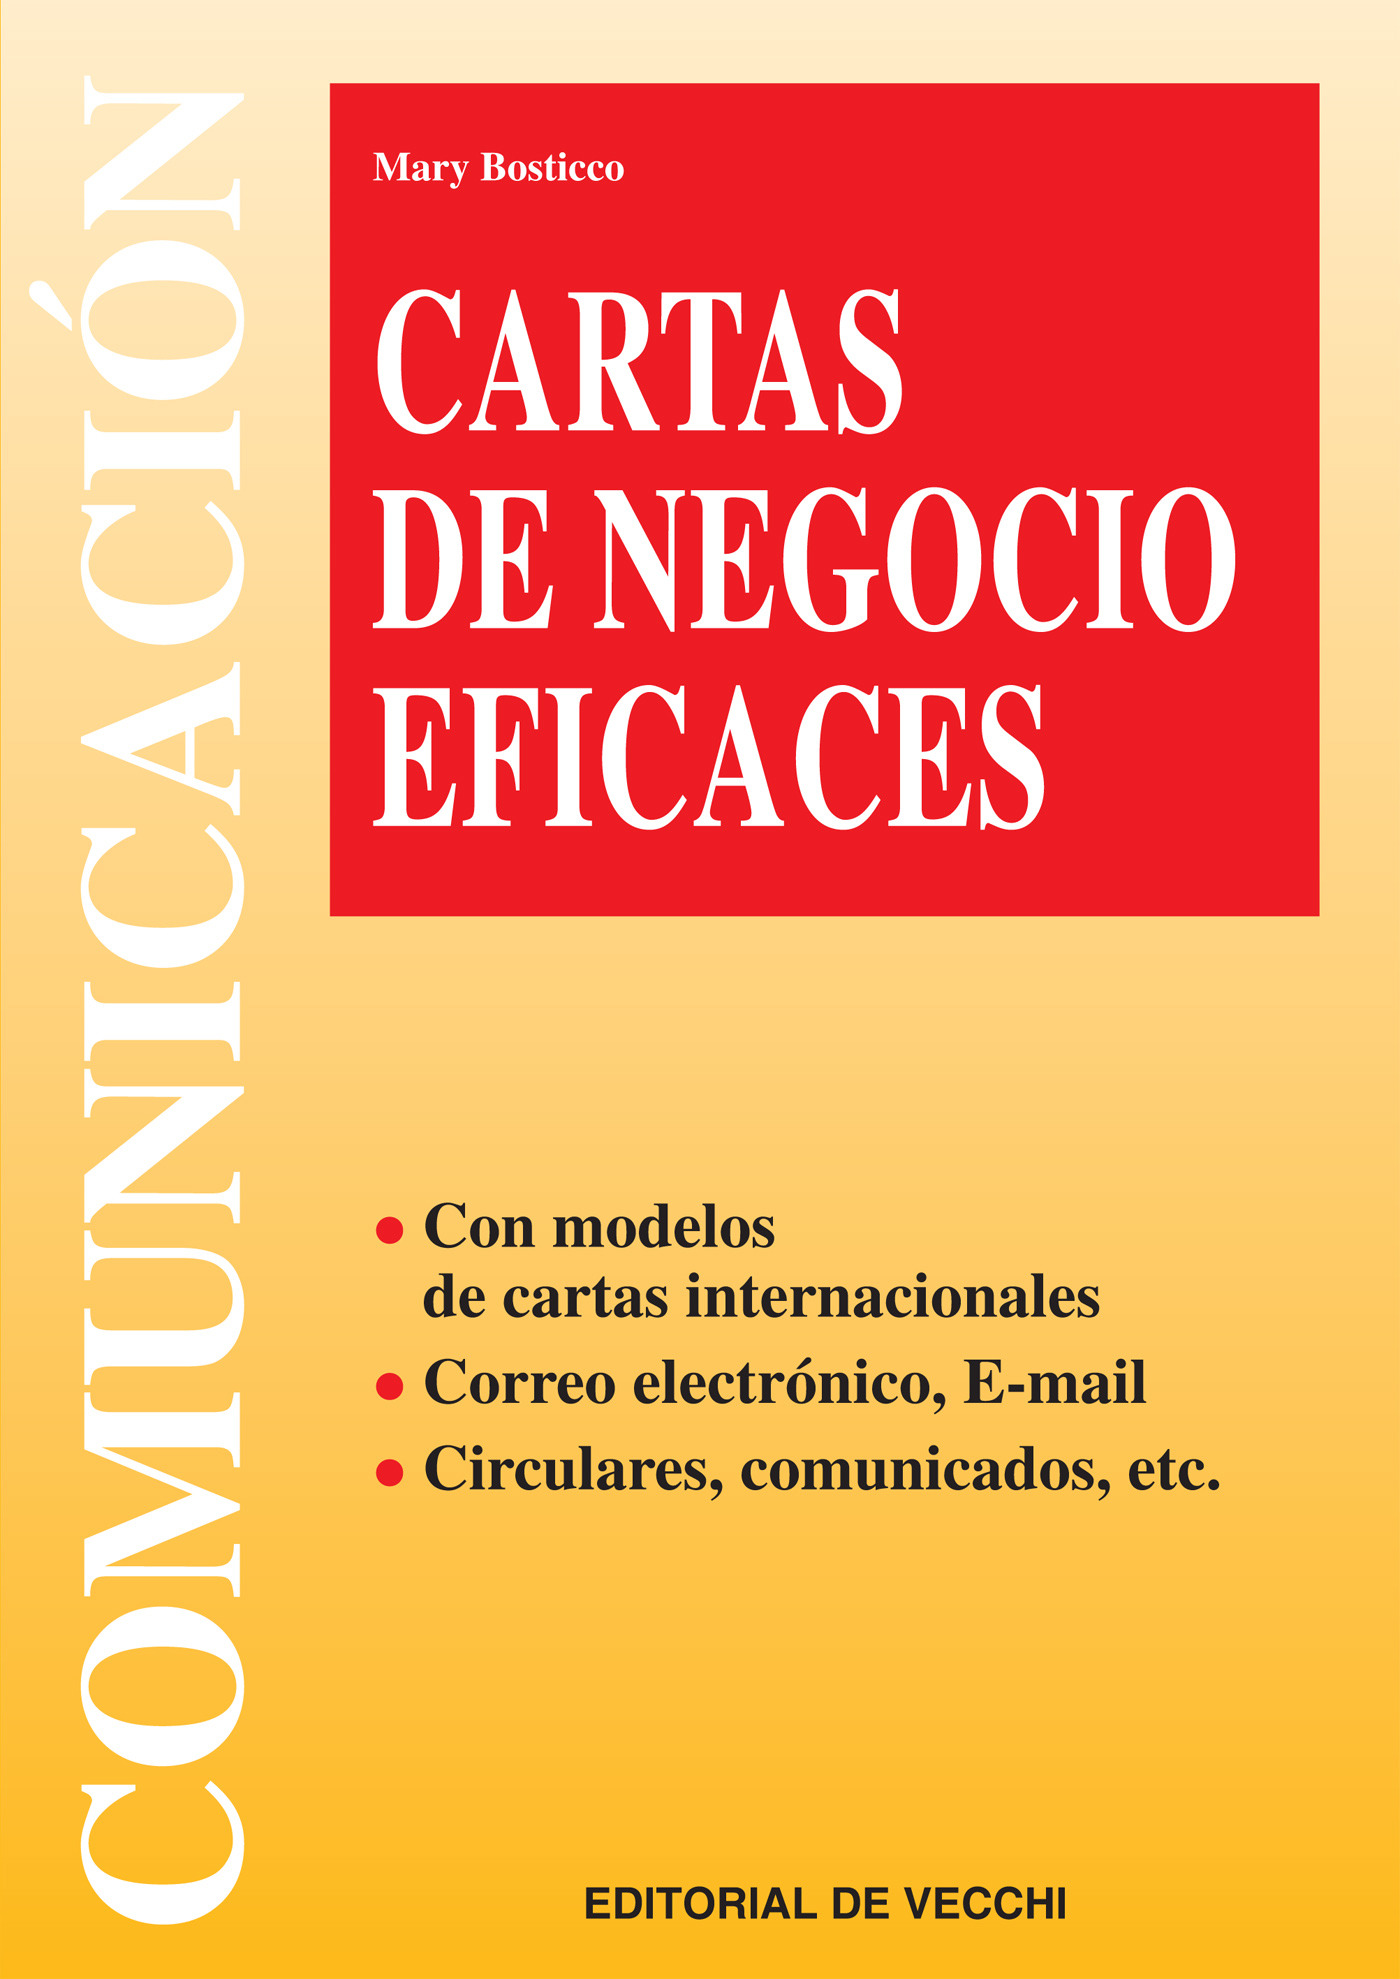 Bosticco, Mary - Cartas de negocio eficaces, ebook